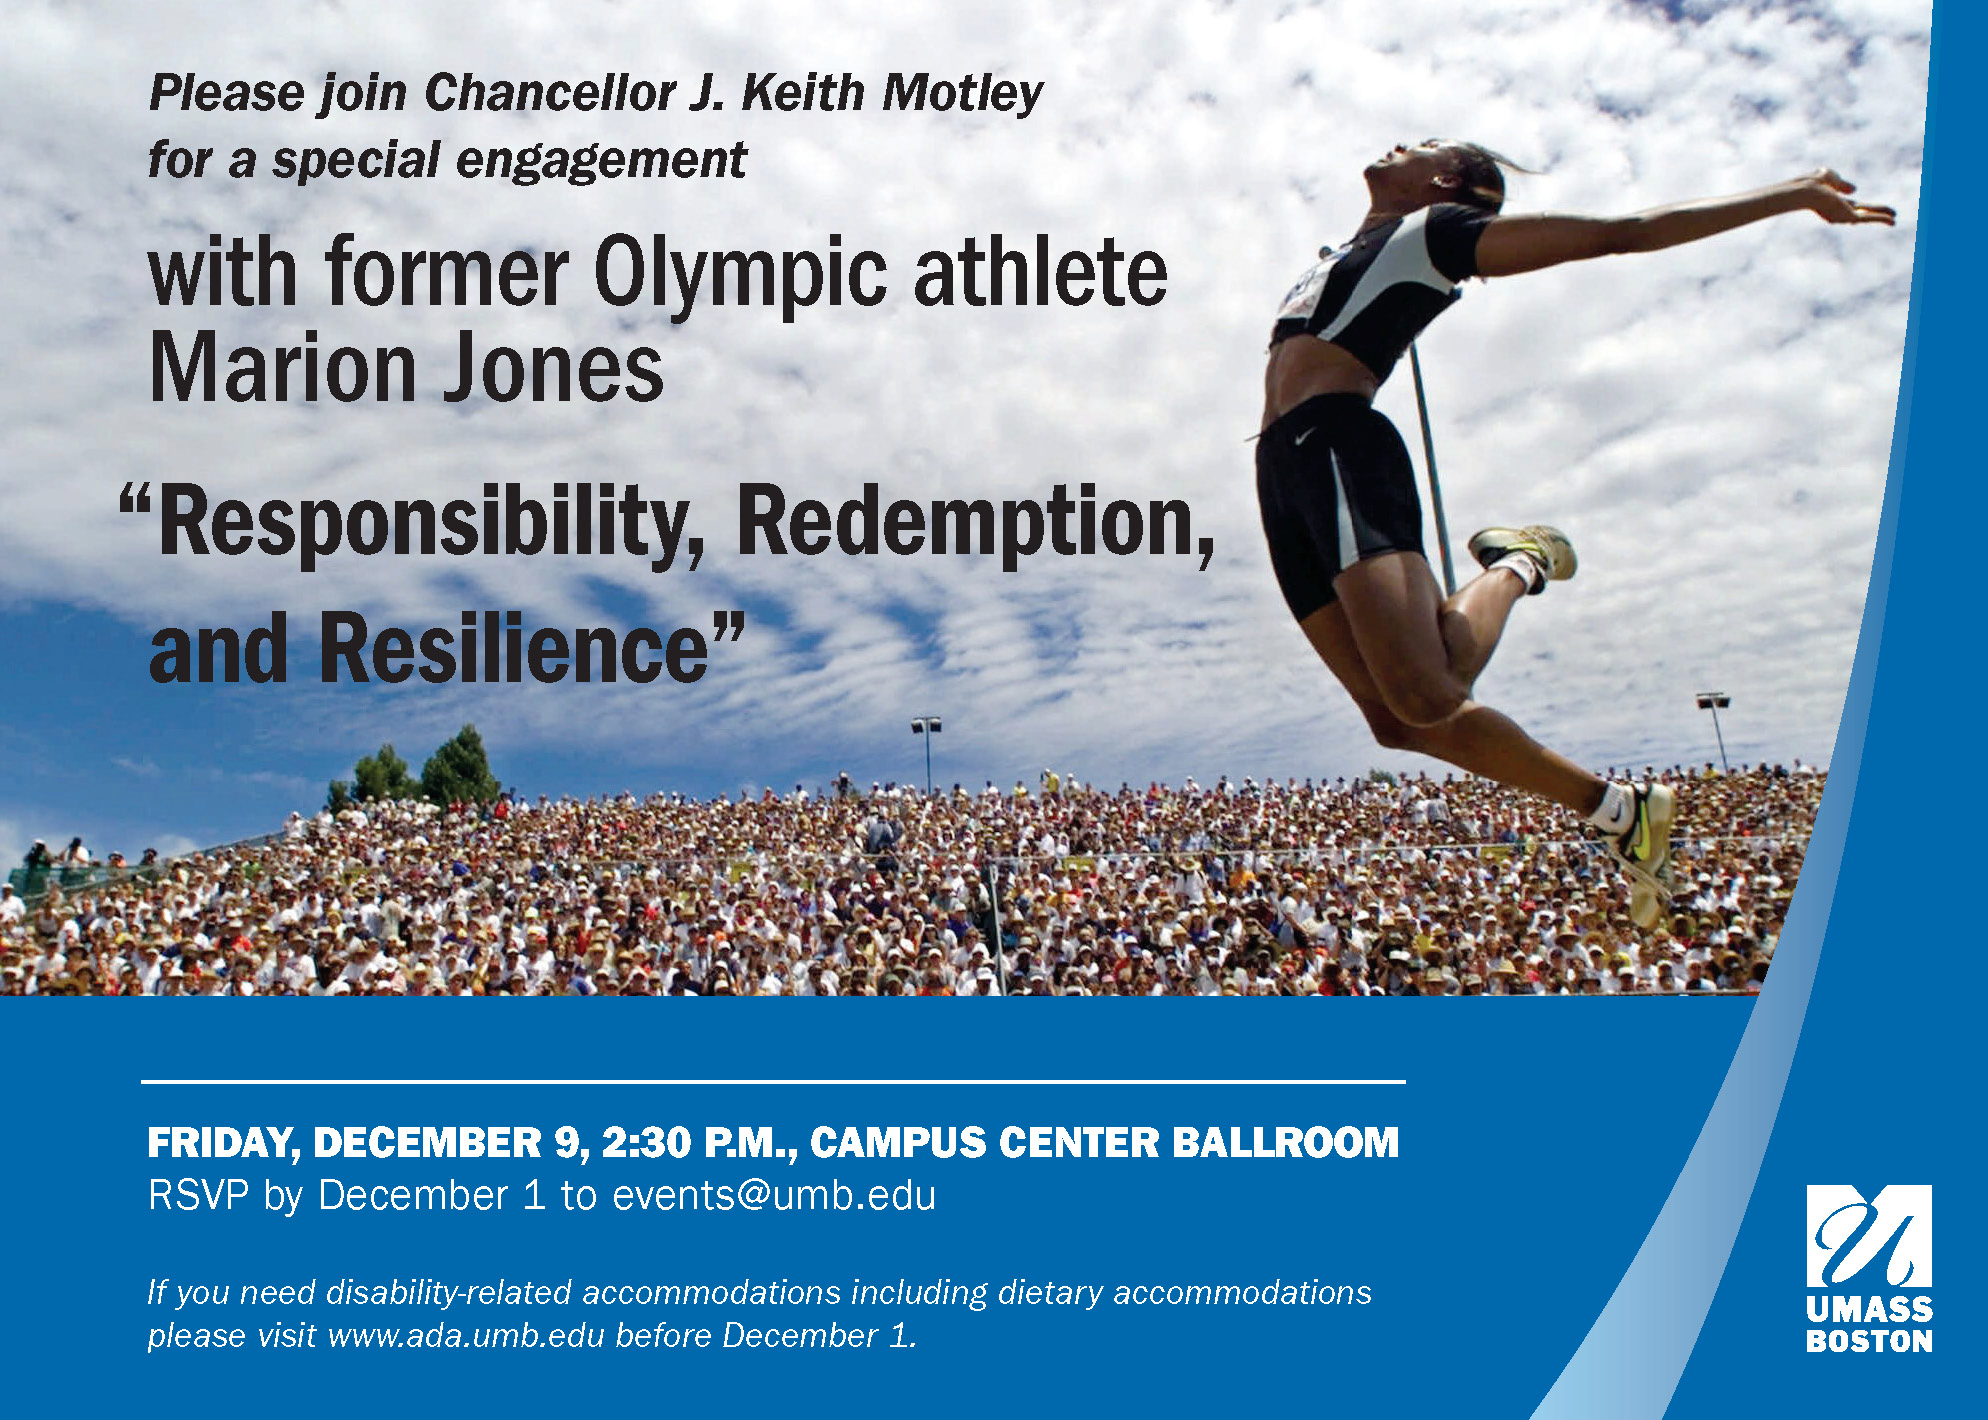 Invitation to hear Marion Jones on Friday December 9 at 2:30pm